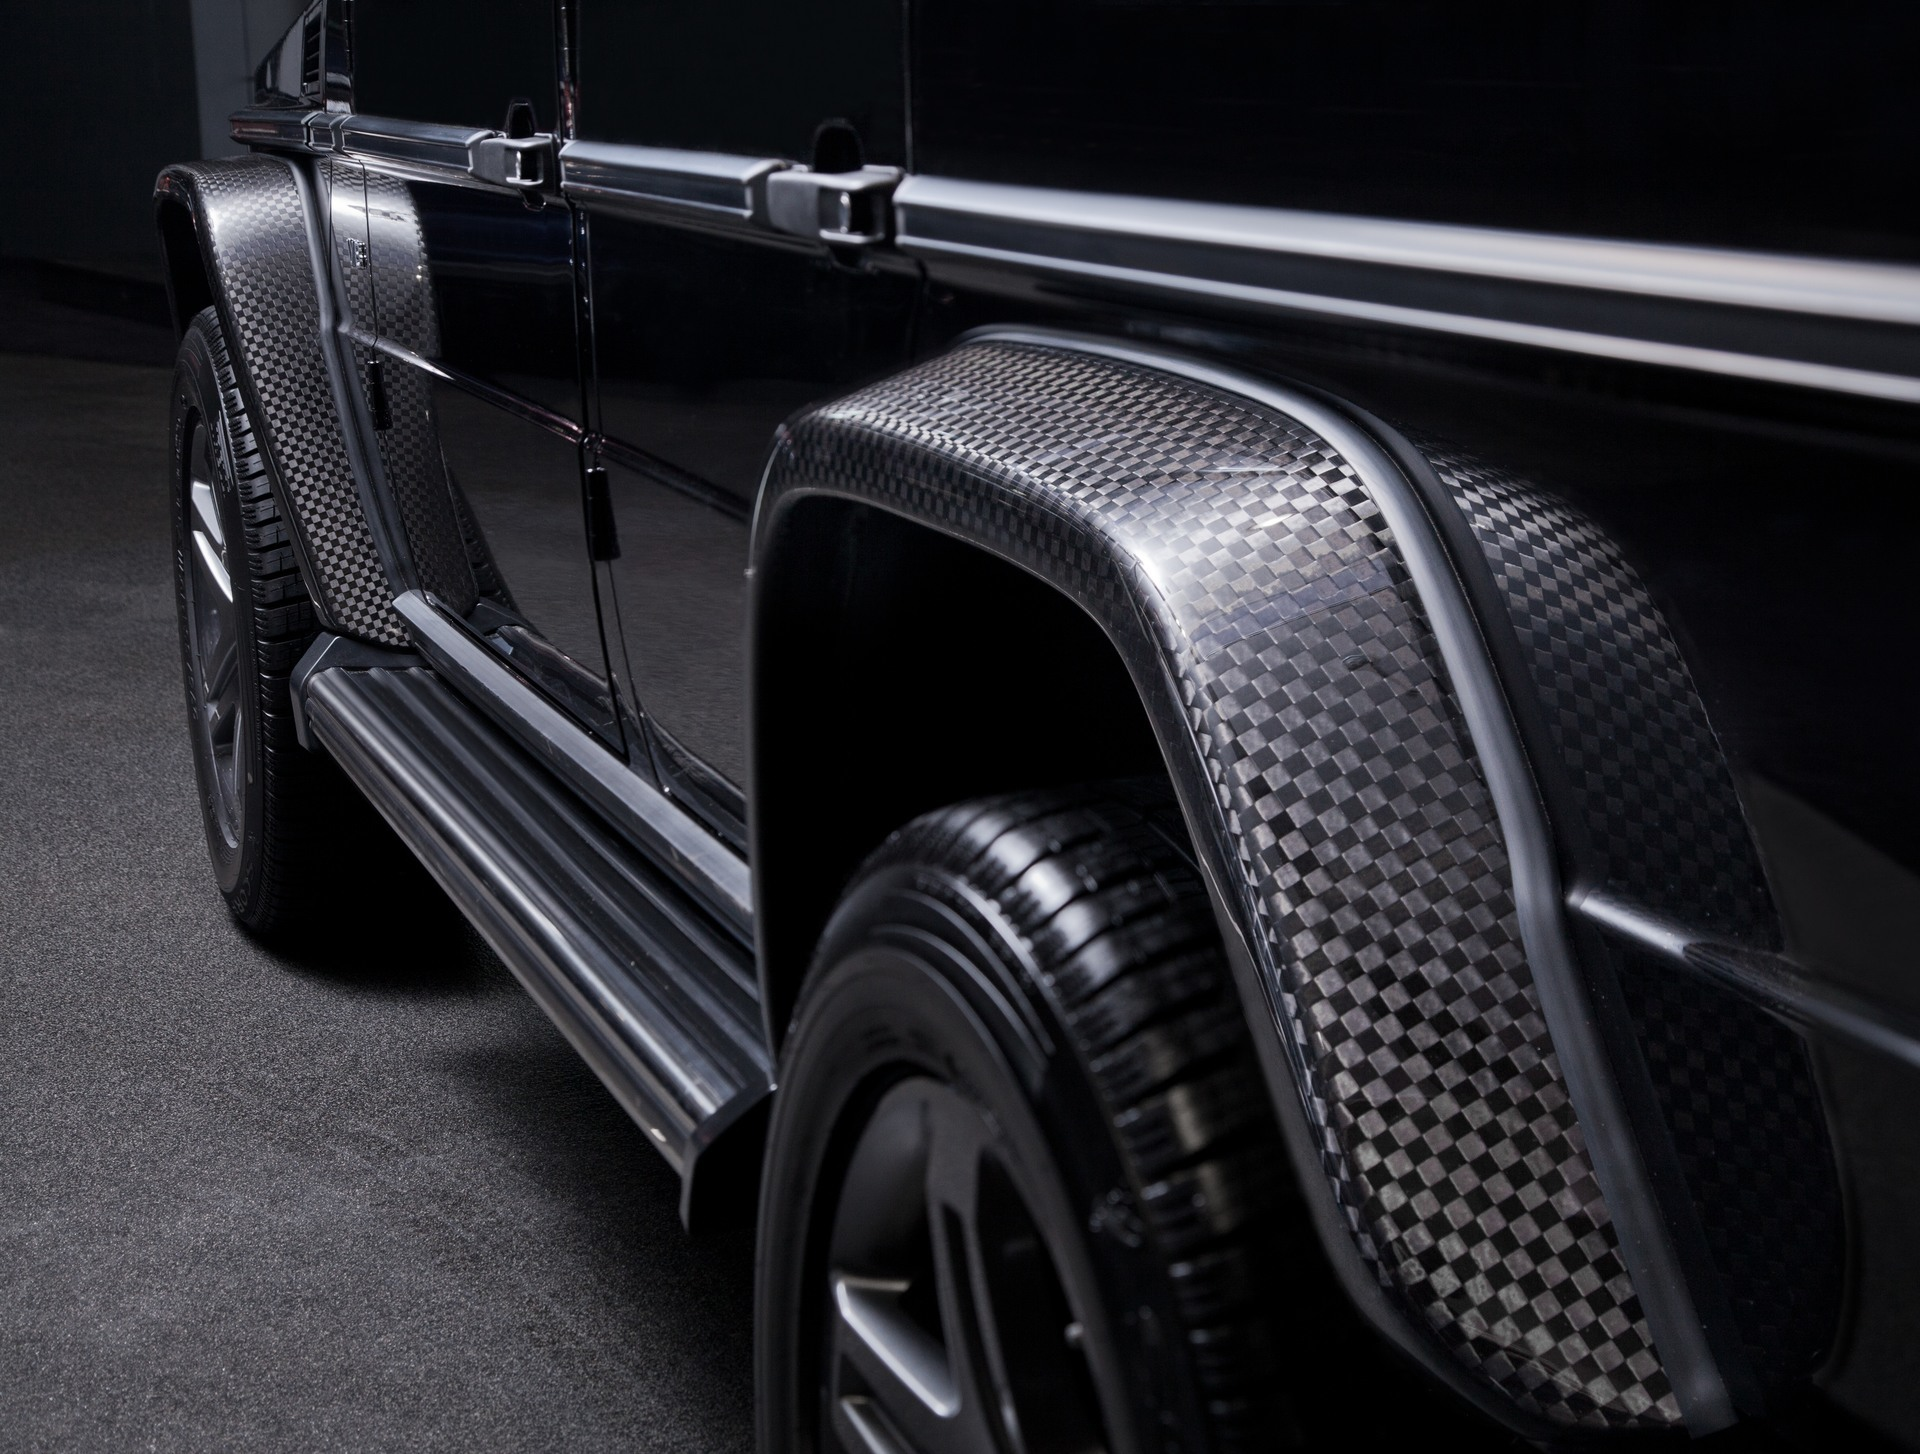 Carbon fiber front rear fender arches set of 4 for g for Mercedes benz g500 parts accessories